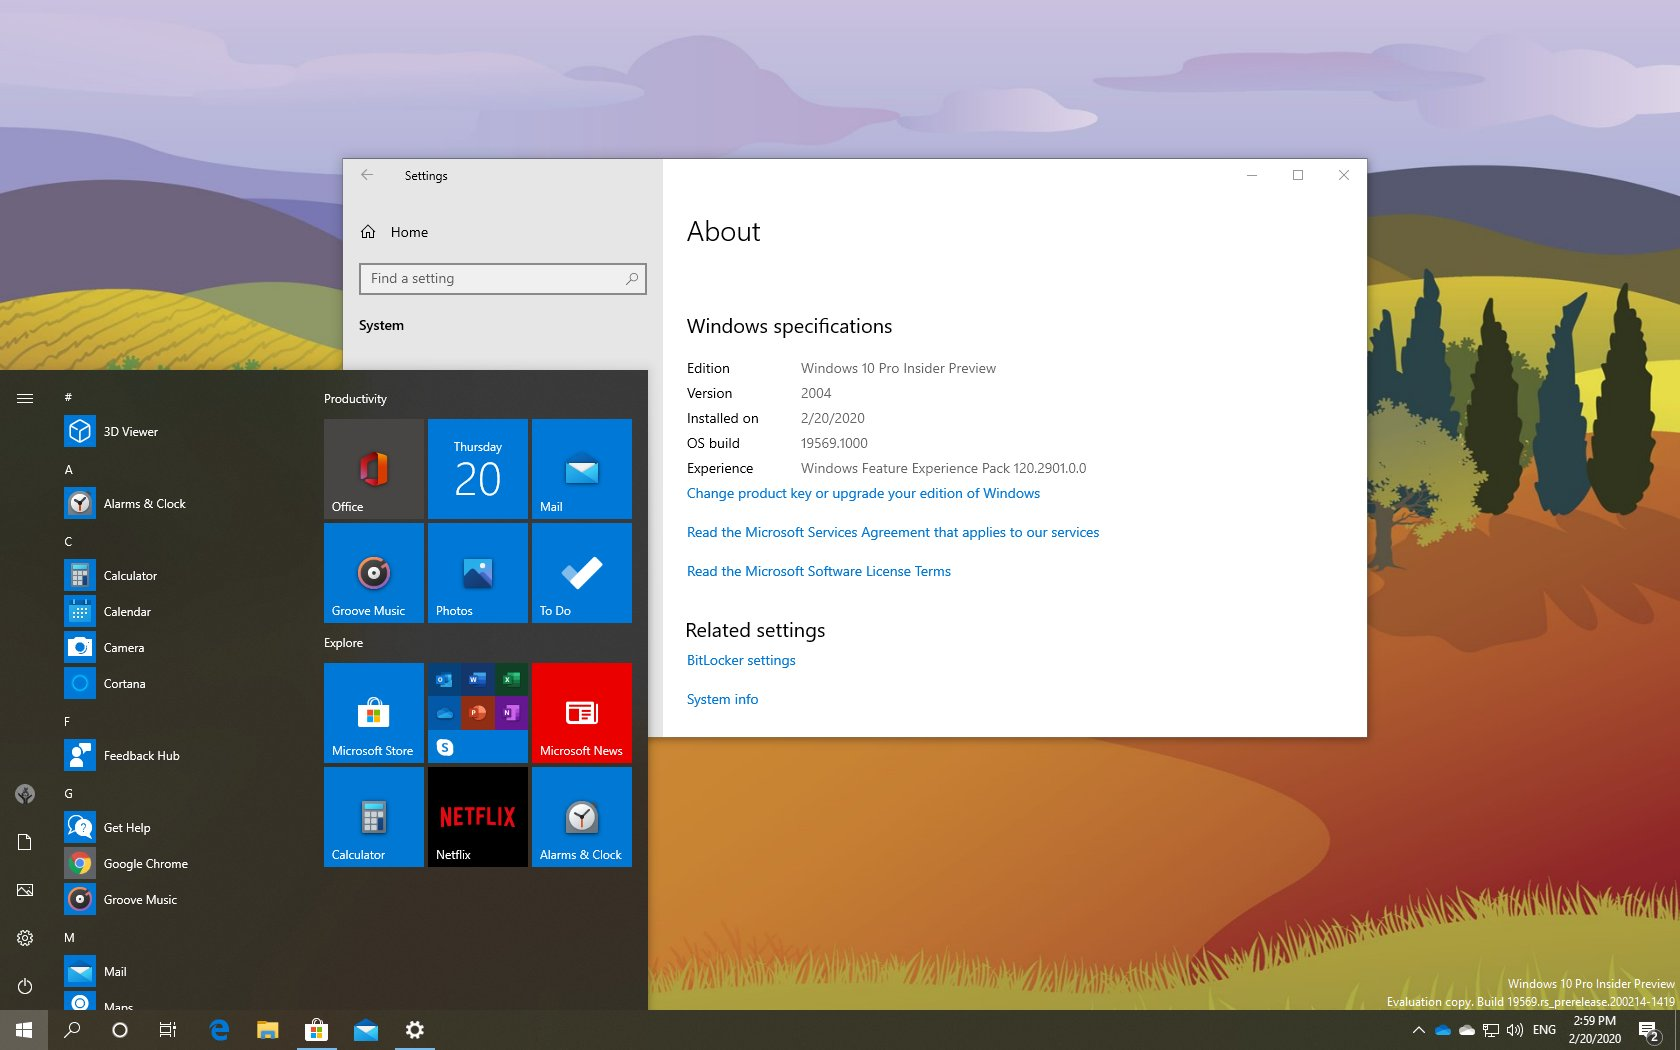 Windows 10 build 19569 with new icons